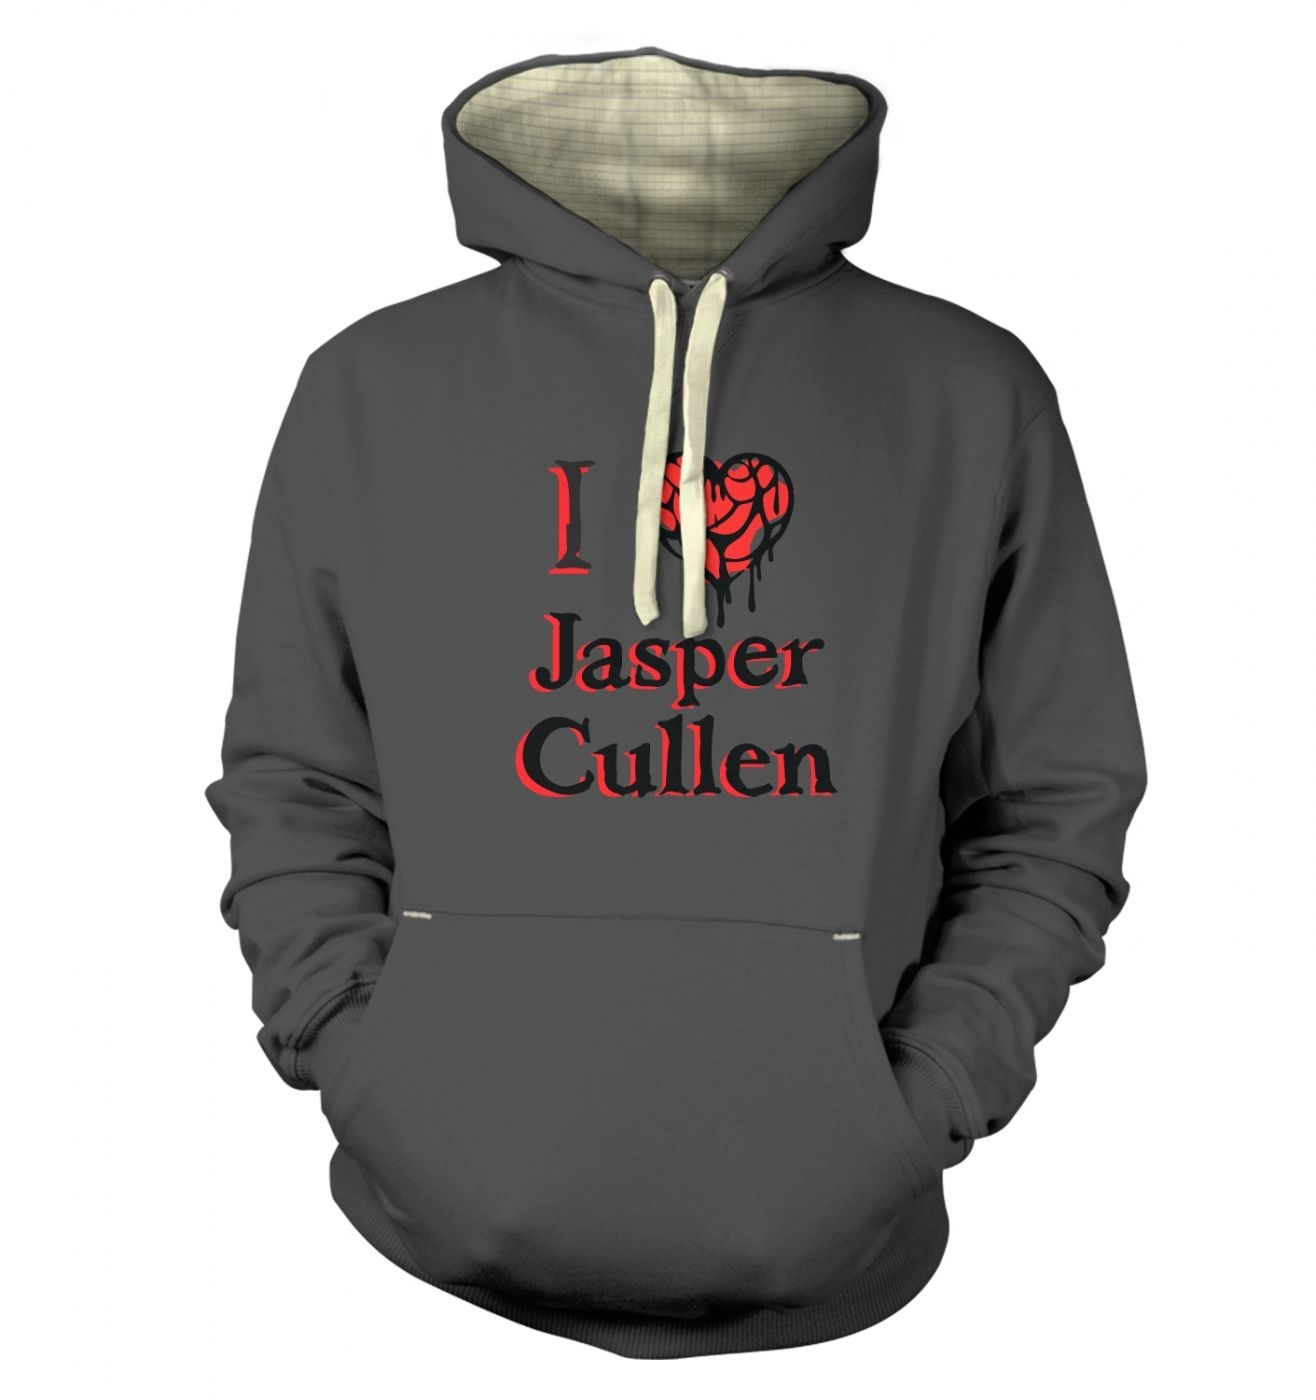 I heart Jasper Cullen premium hoodie - Inspired by Twilight